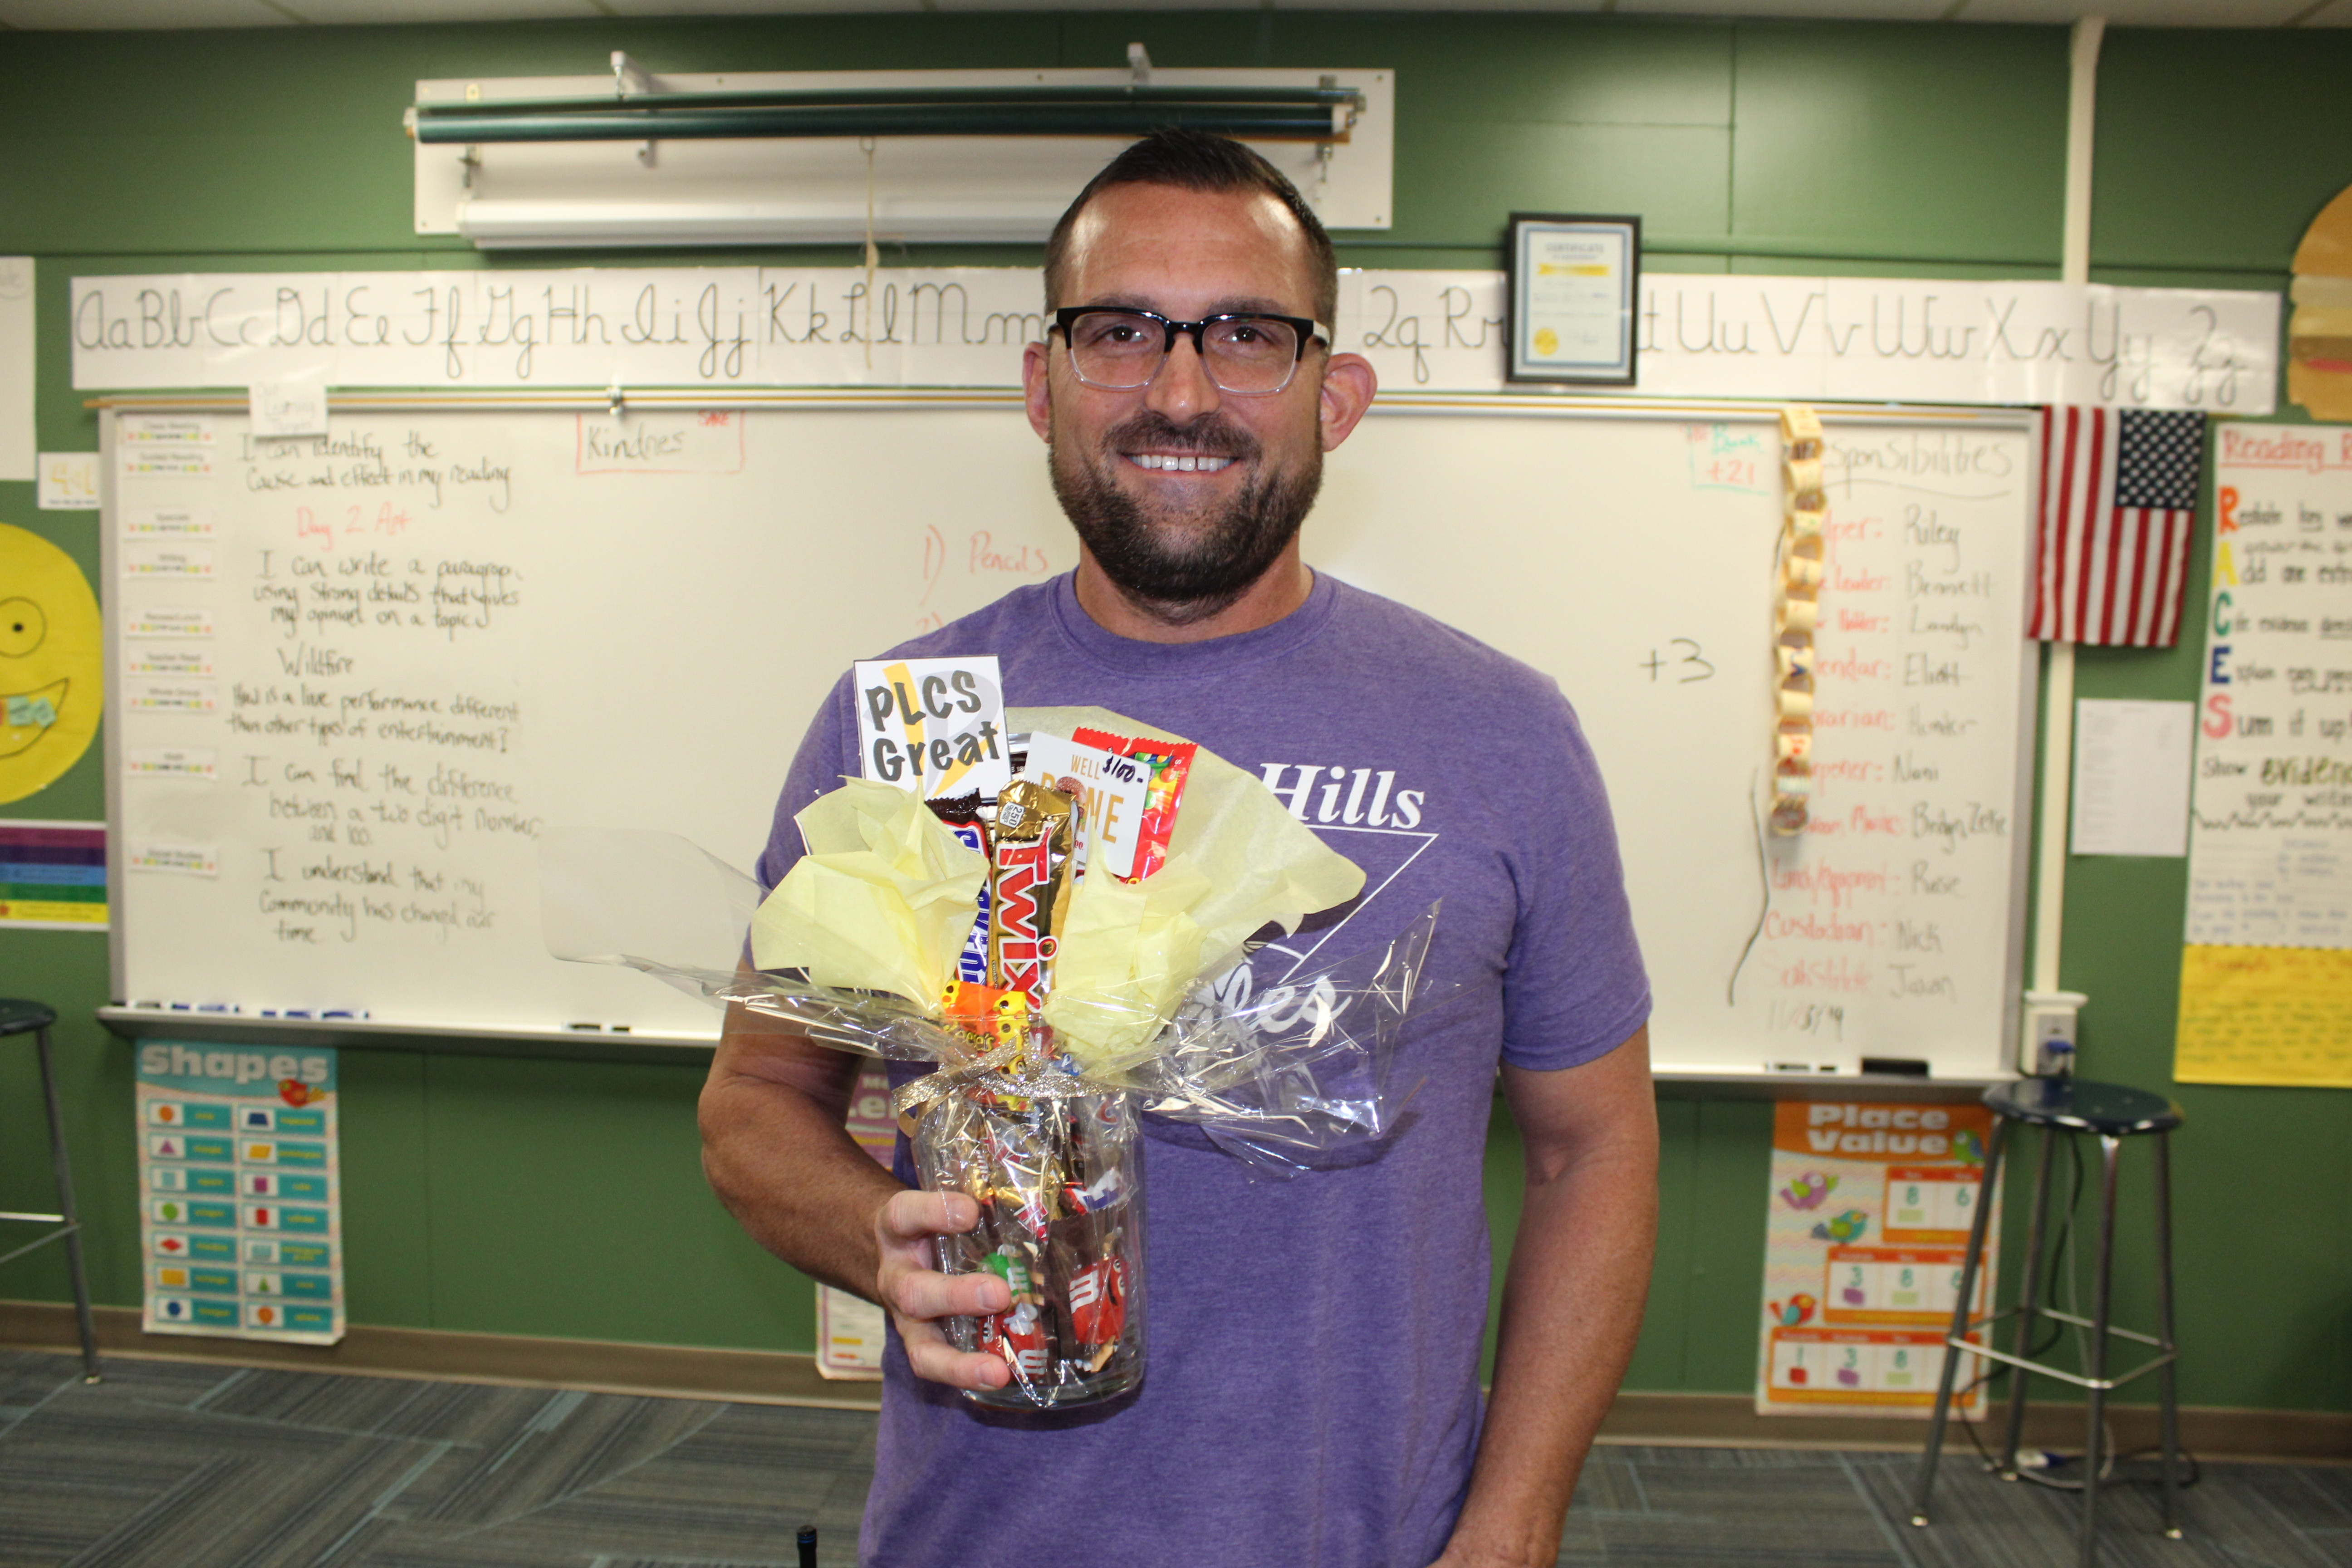 Golden Hills Elementary teacher Tim Schooley is Nov. PLCS Great Superintendent Award winner